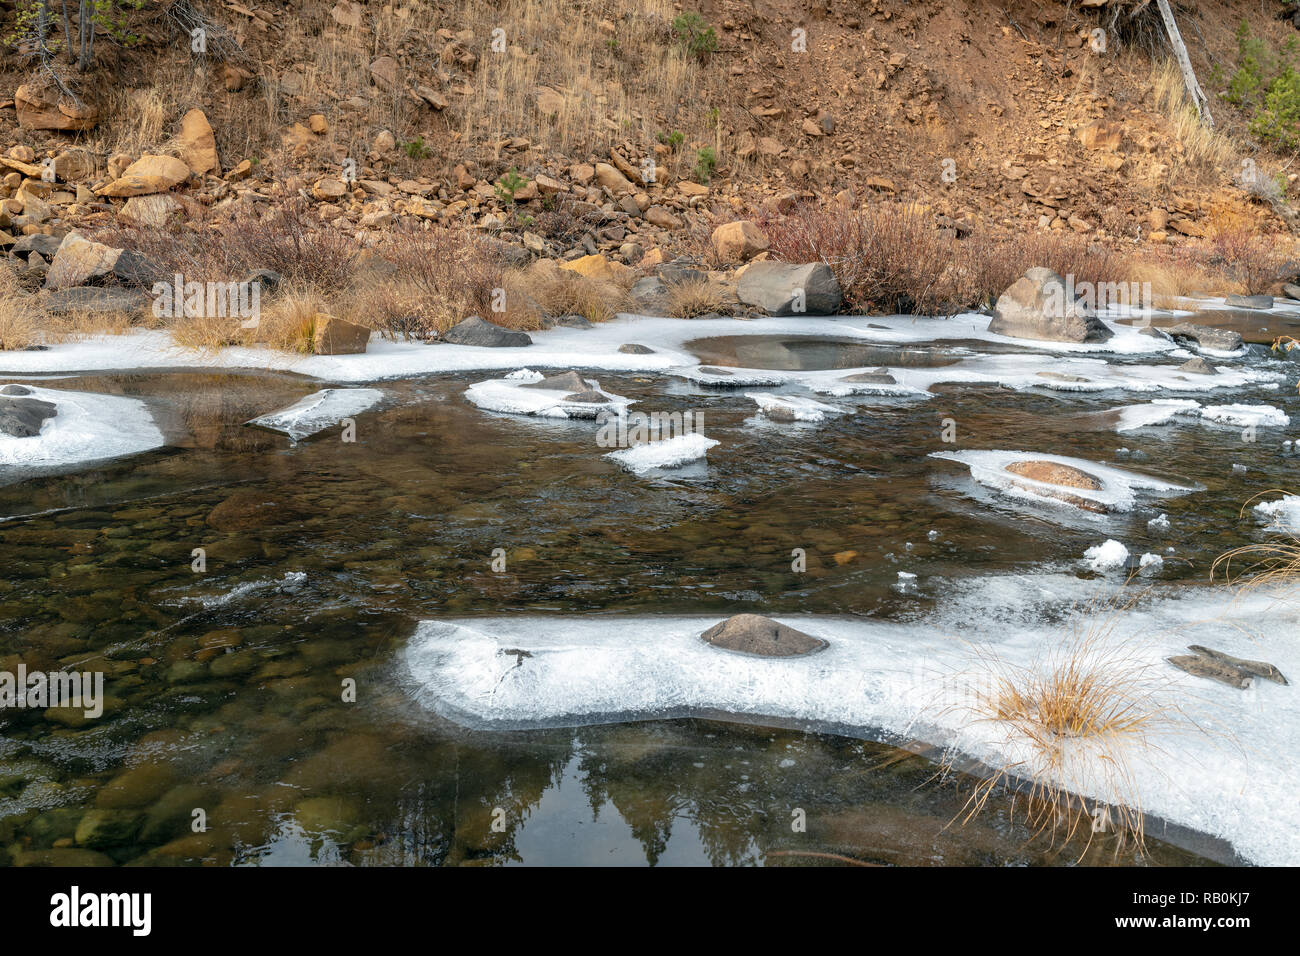 The frosty riverbank of the Little Truckee River, California, USA - Stock Image